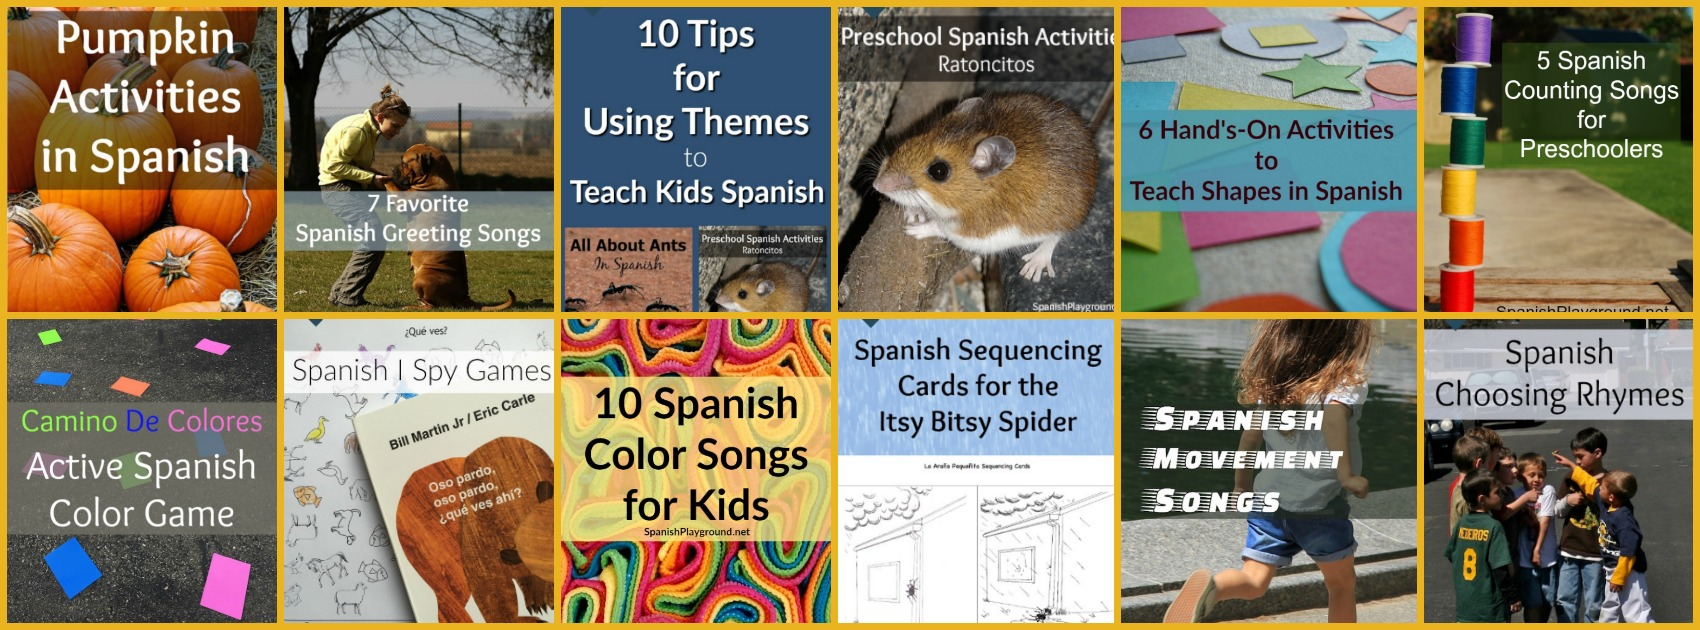 preschool spanish activities archives spanish playground